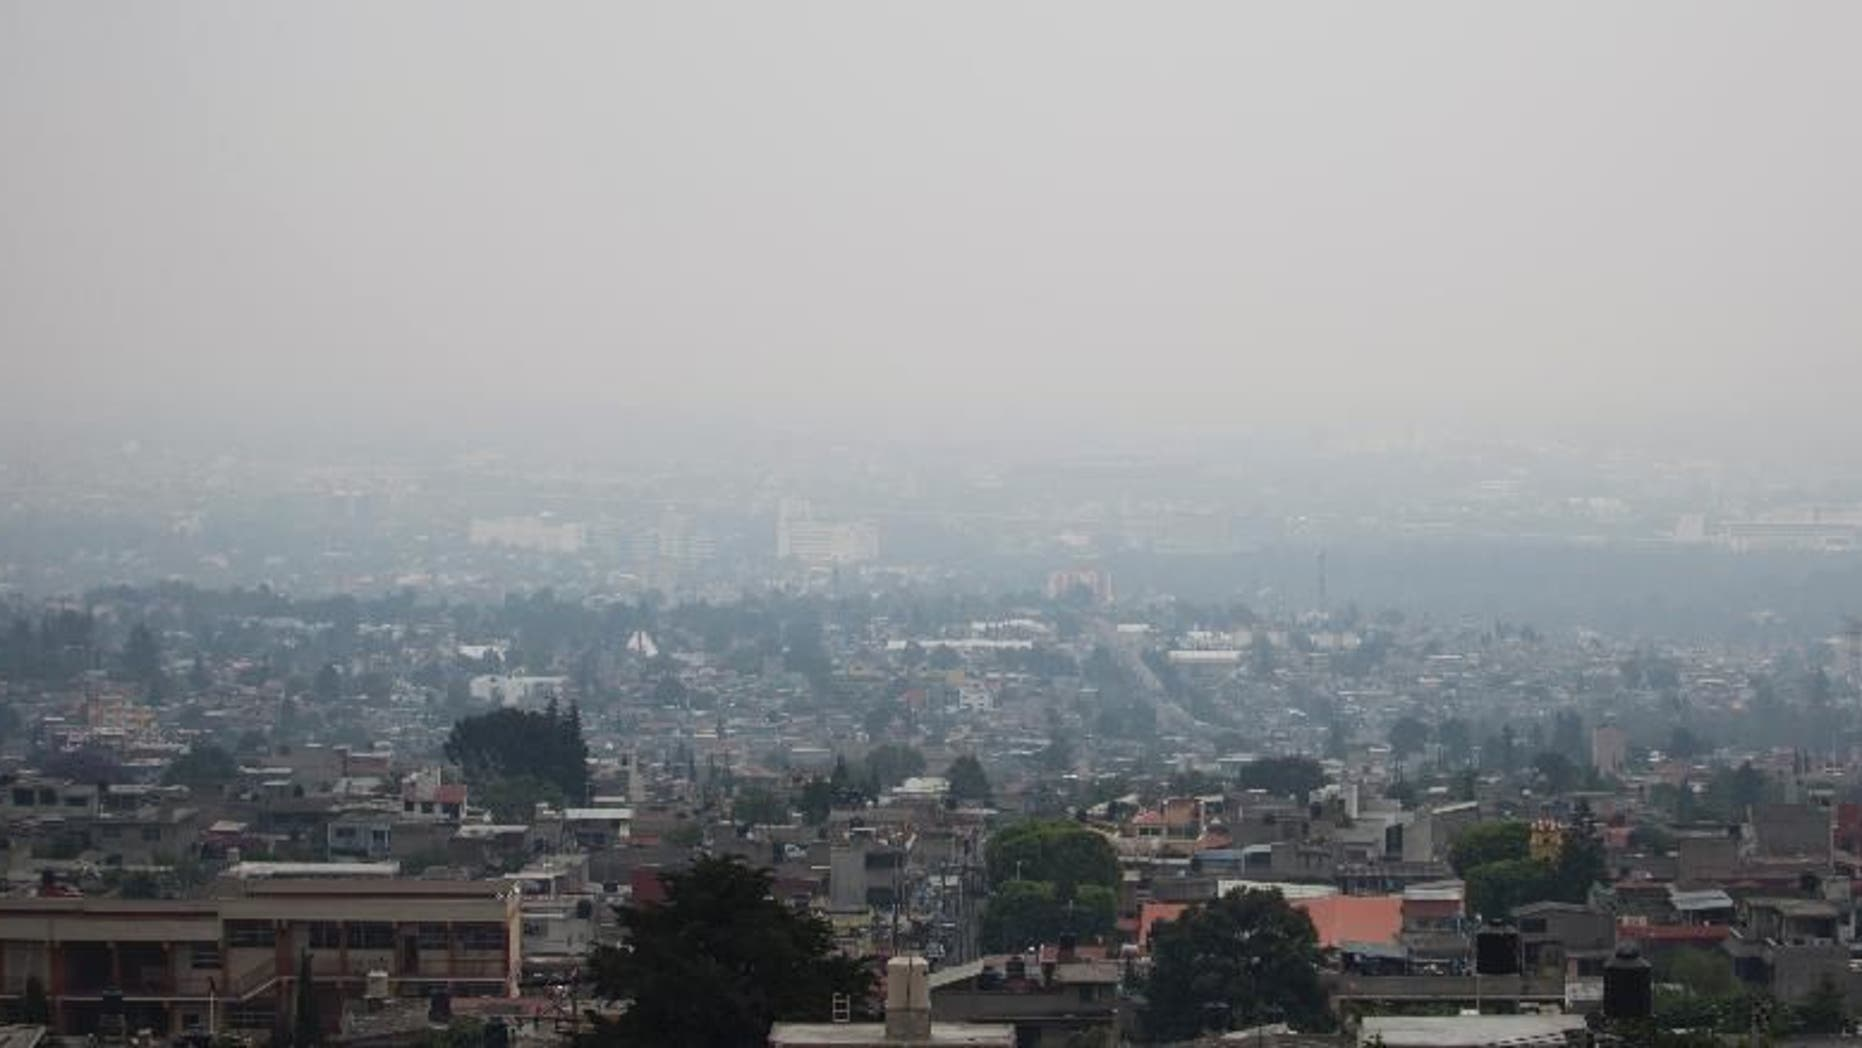 According to a study published on Wednesday, air pollution has been linked to psychotic experiences in adolescents. (AP Photo / Eduardo Verdugo)